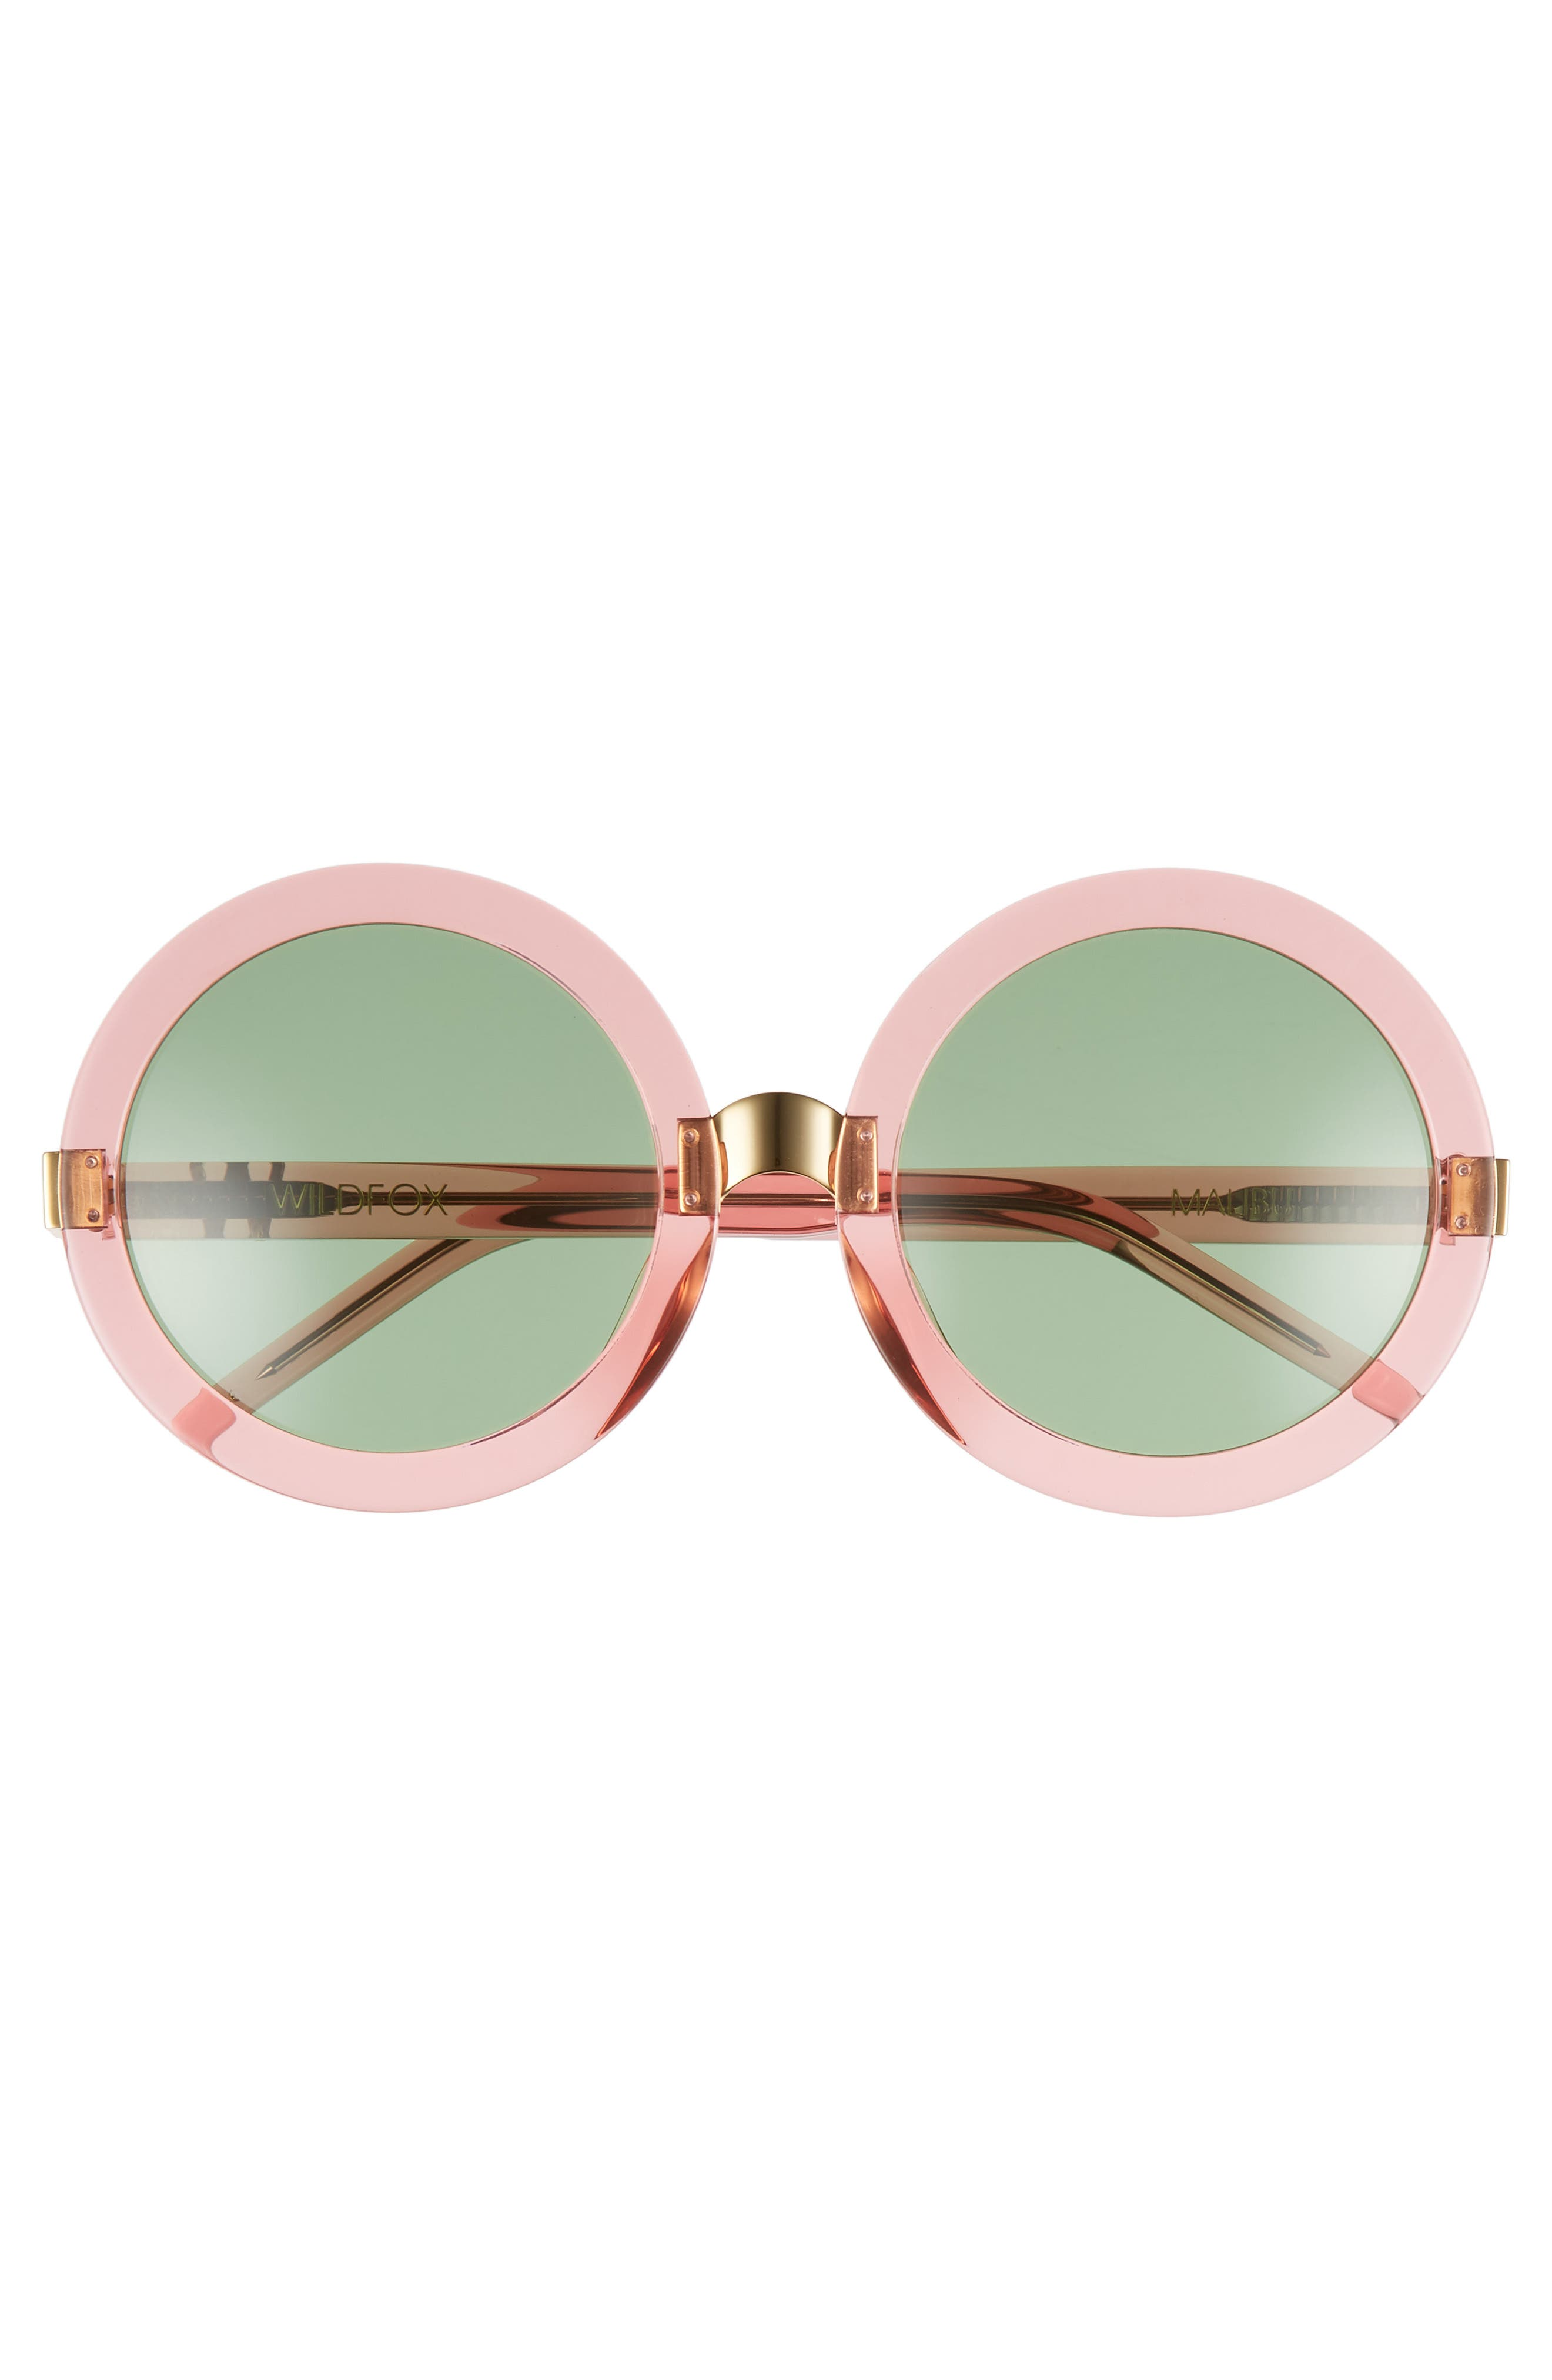 WILDFOX,                             'Malibu' 56mm Round Sunglasses,                             Alternate thumbnail 3, color,                             690